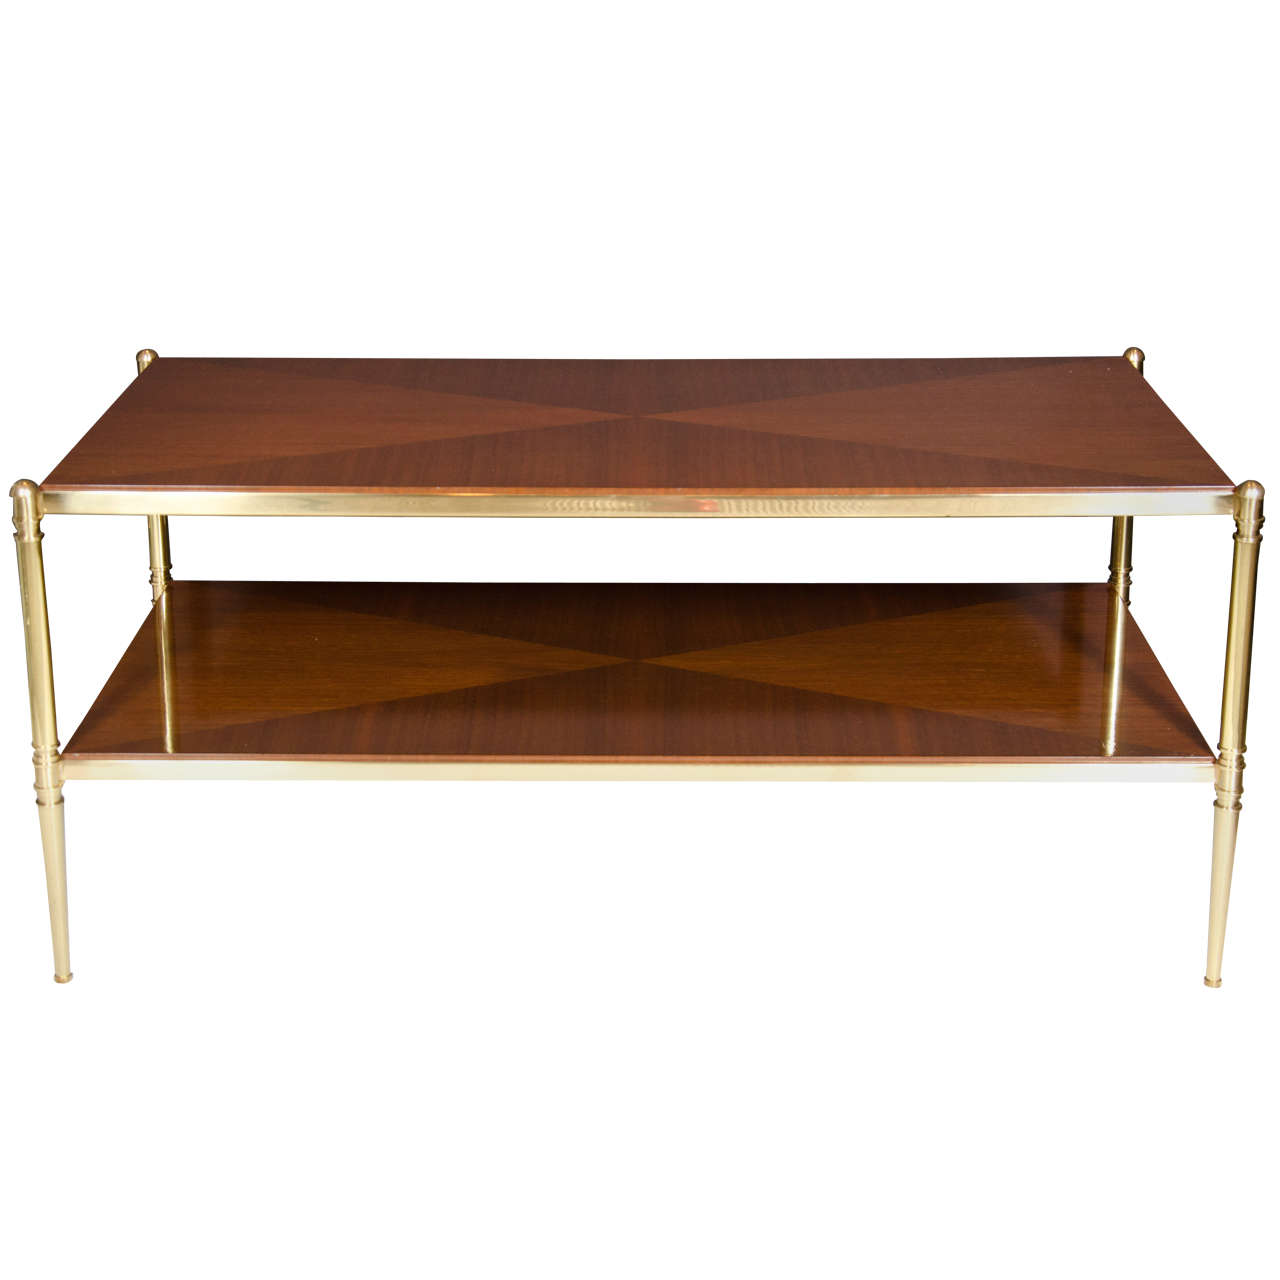 Elegant Brass And Glass Coffee Table: Elegant Book Matched Walnut And Brass Cocktail Table By